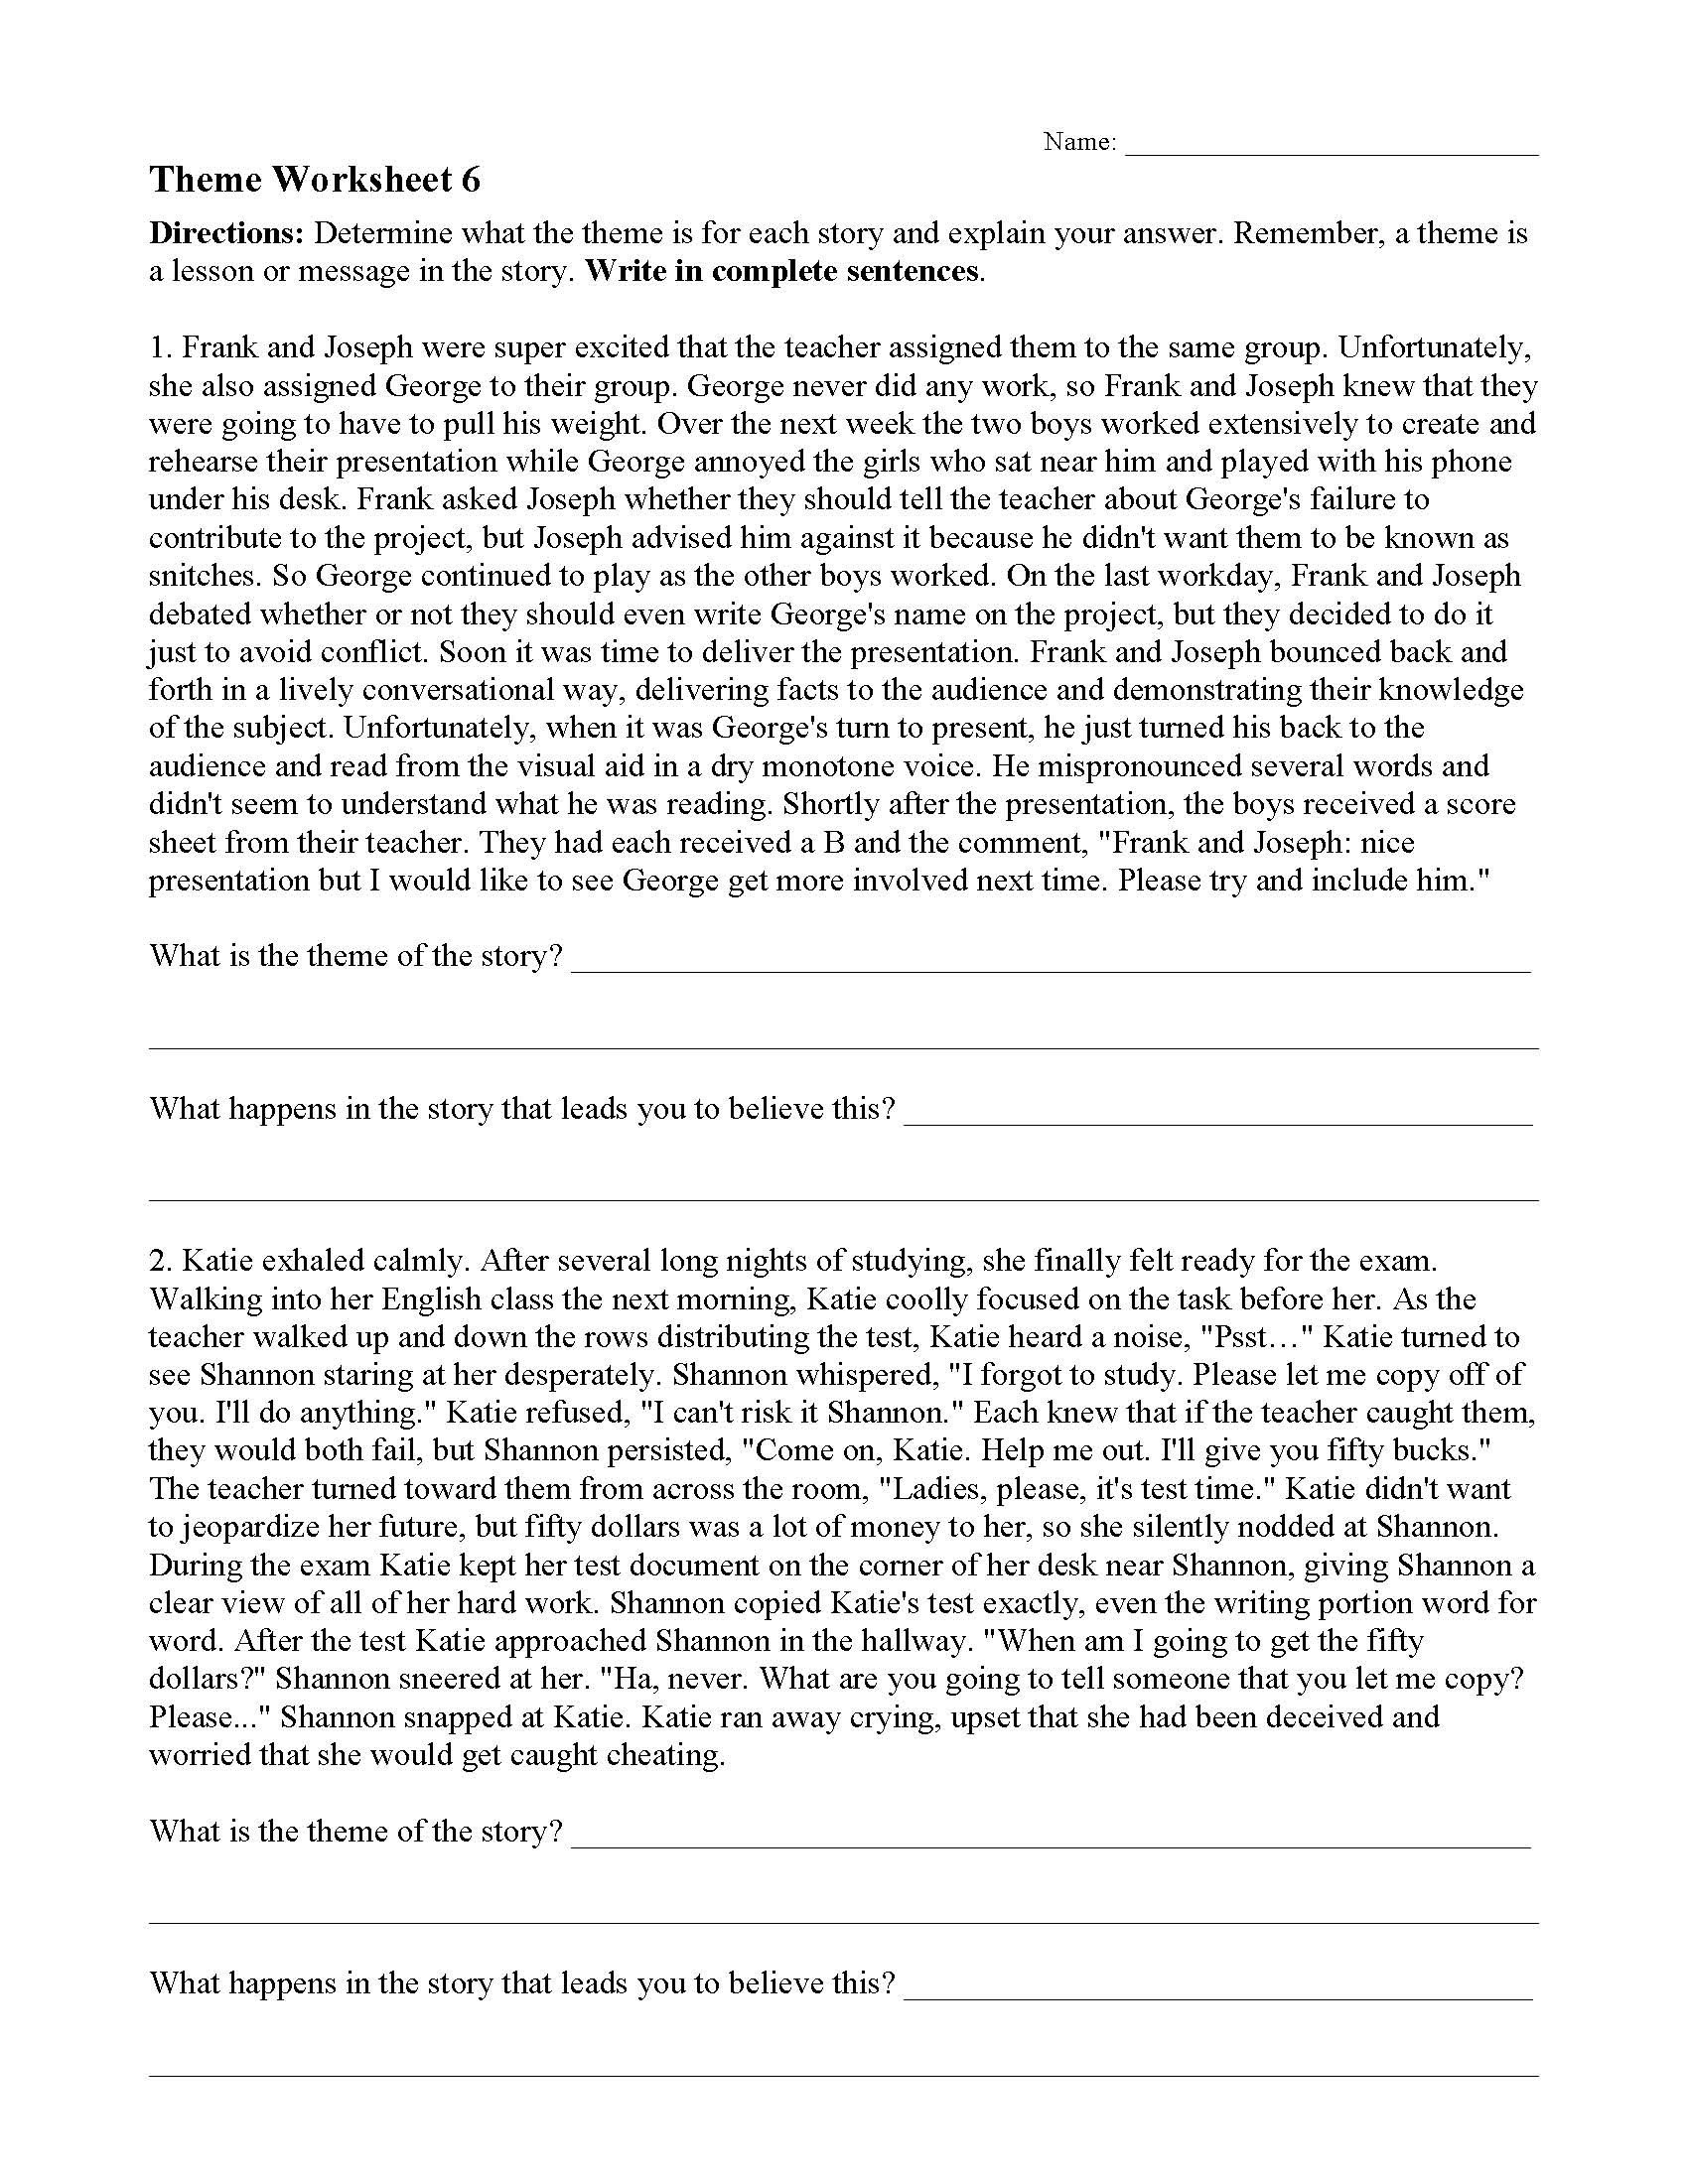 theme worksheet 06 01